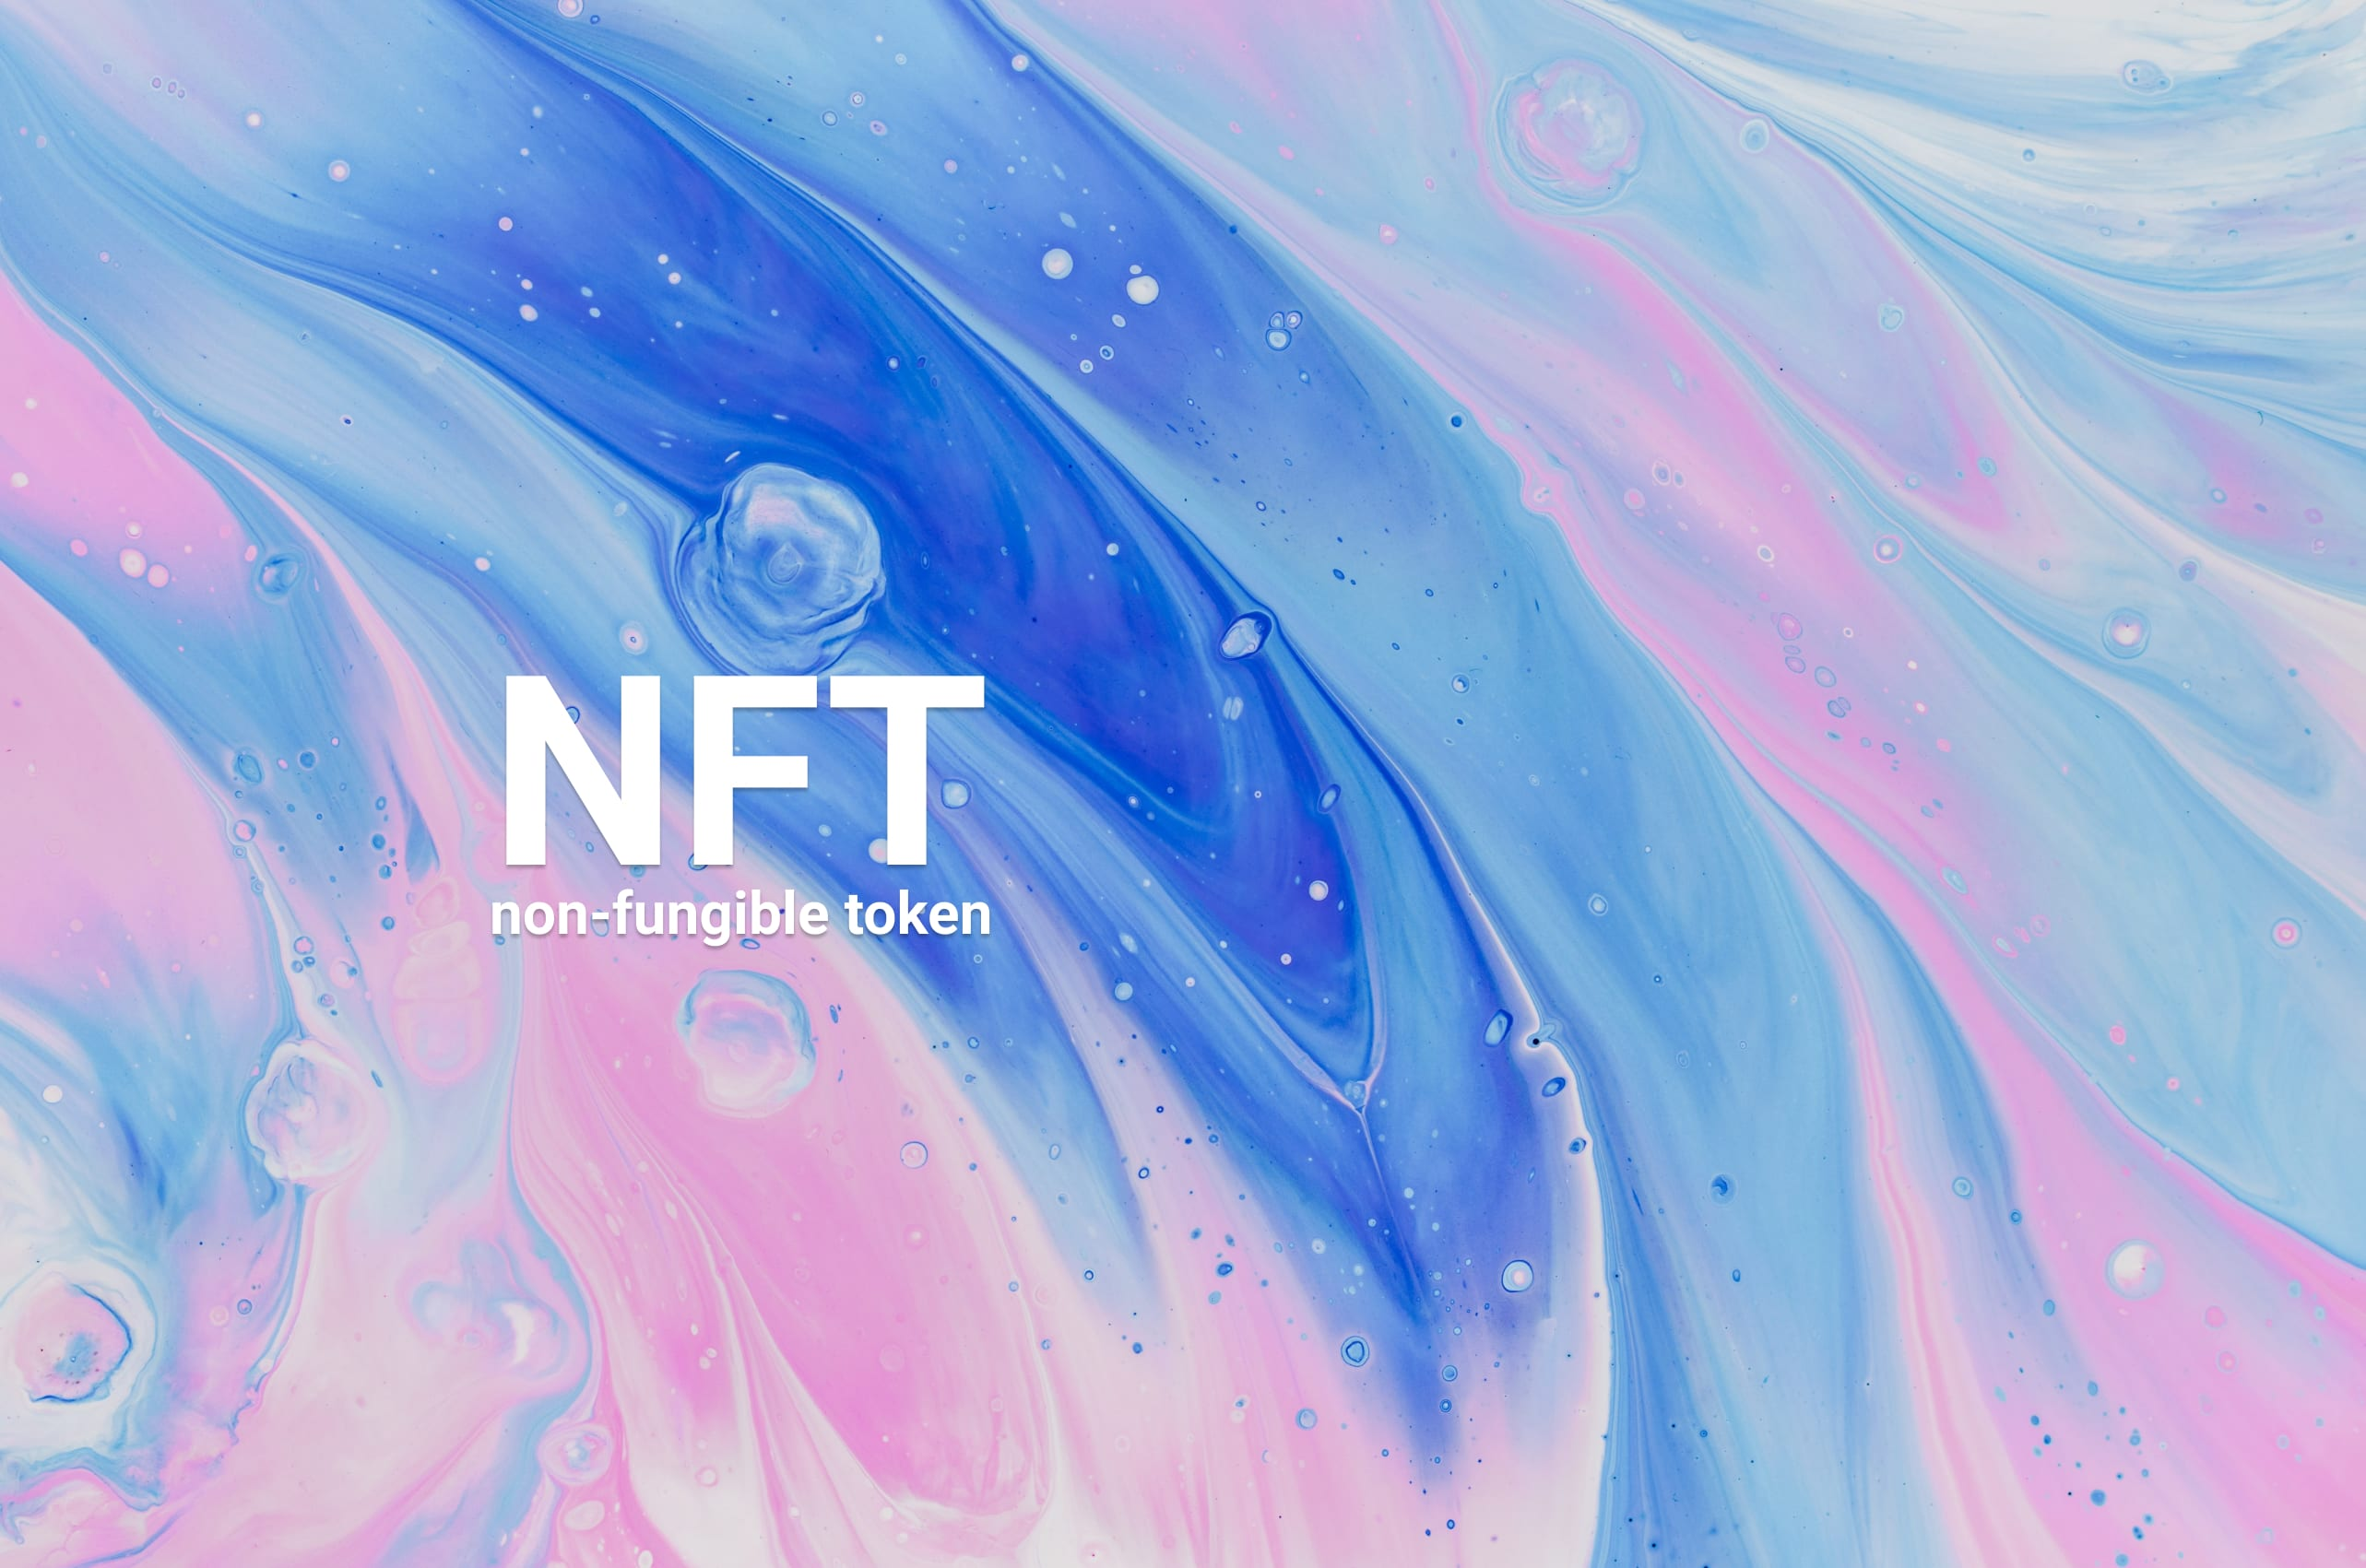 NFT in Layman's Terms